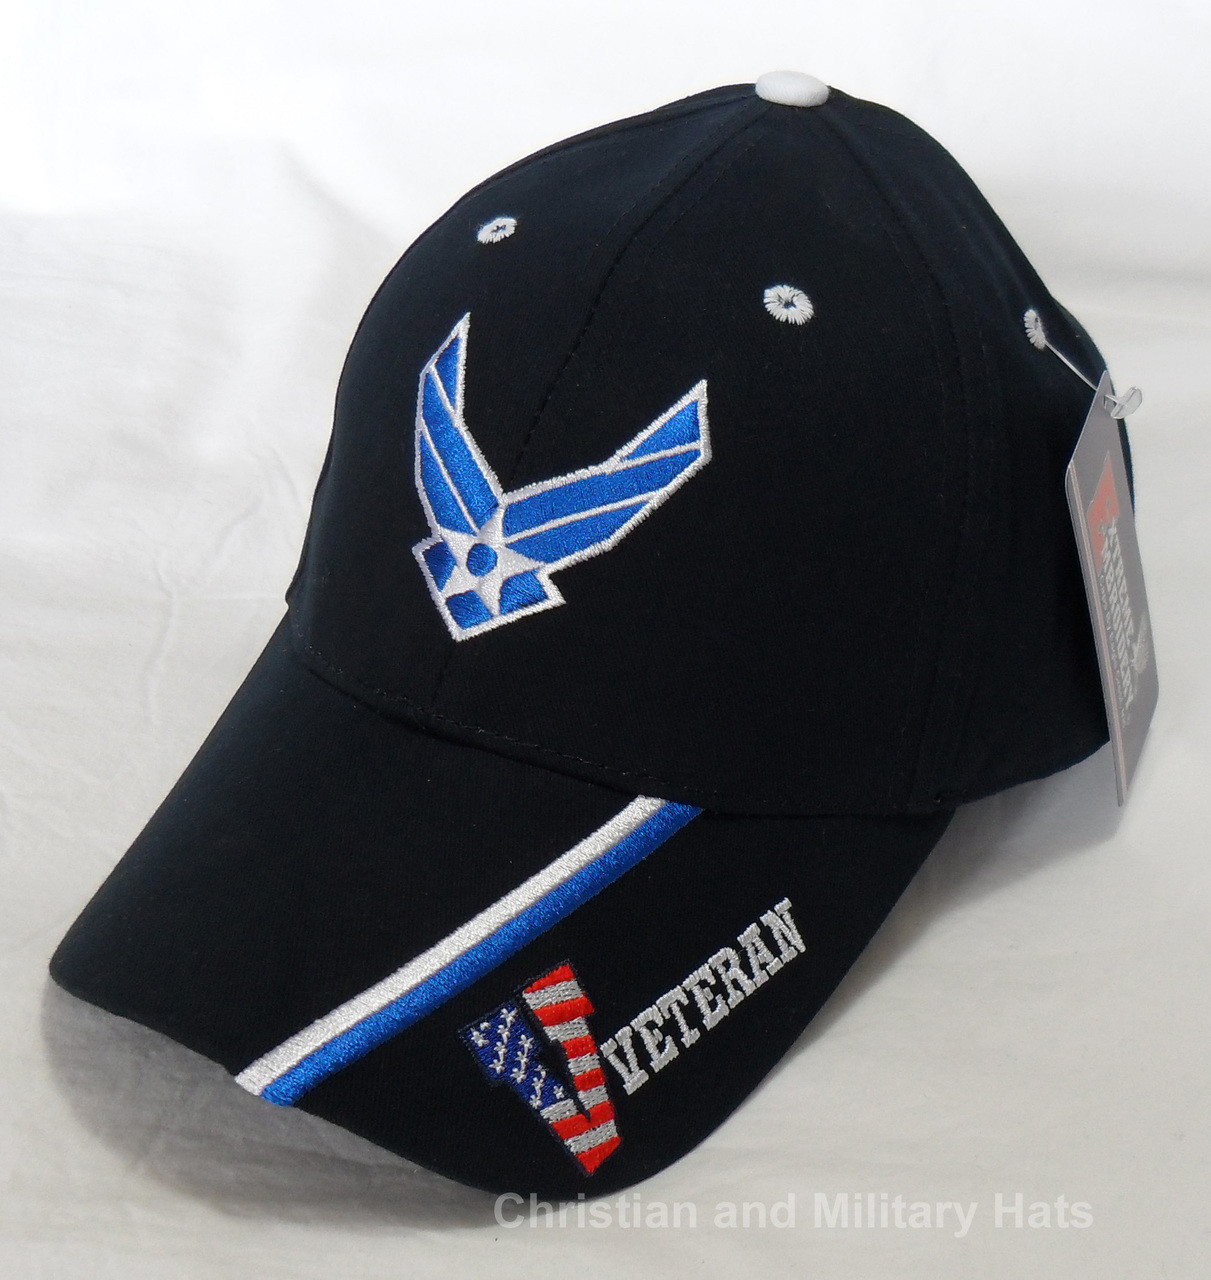 2c951bdb66 USAF US AIR FORCE VETERAN - Hap   Stripe Officially Licensed Baseball Cap  Hat